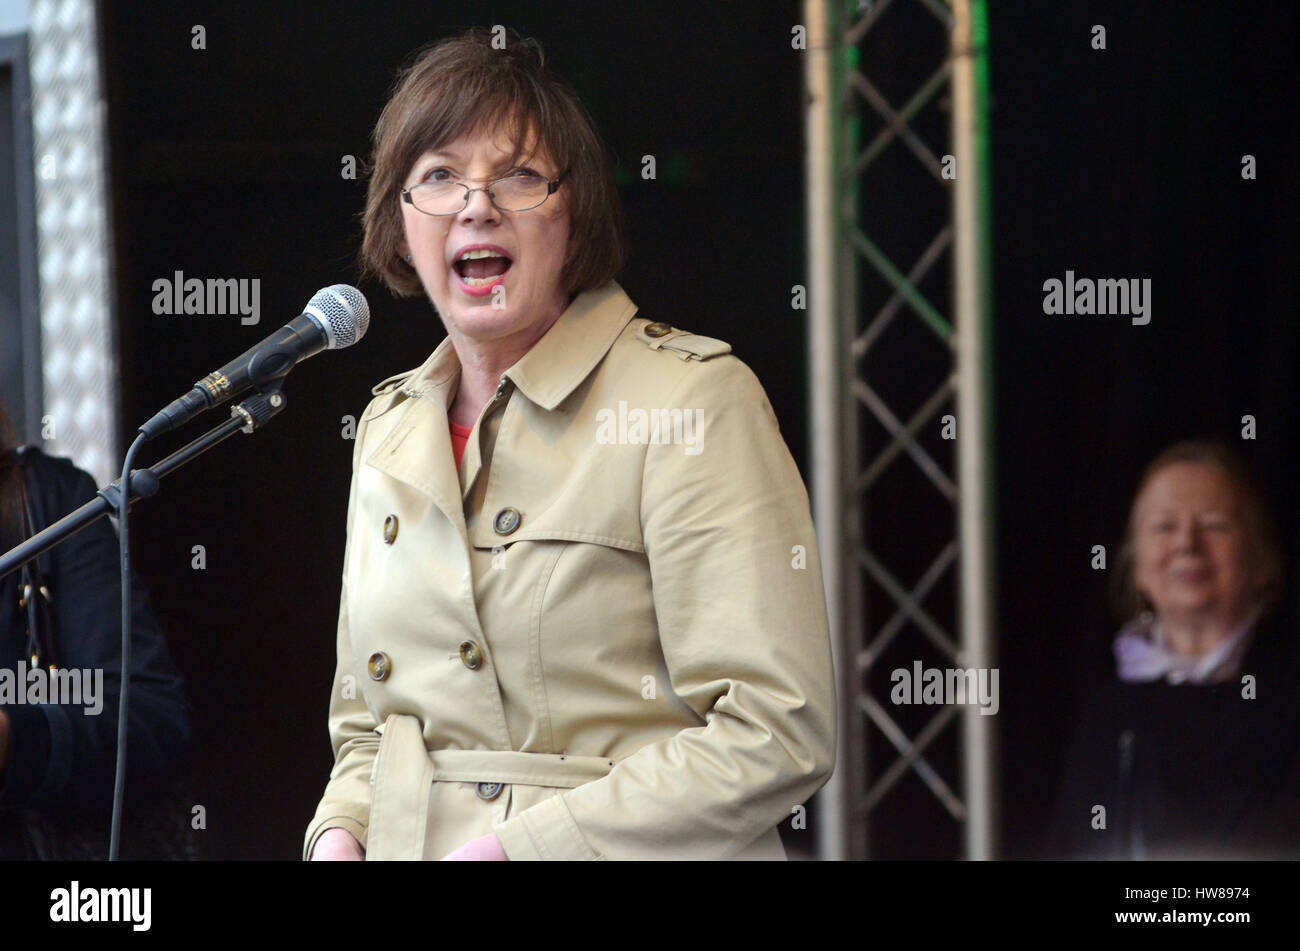 London, UK,  18 March 2017 Frances Lorraine O'Grady the General Secretary of the British Trades Union Congress - Stock Image